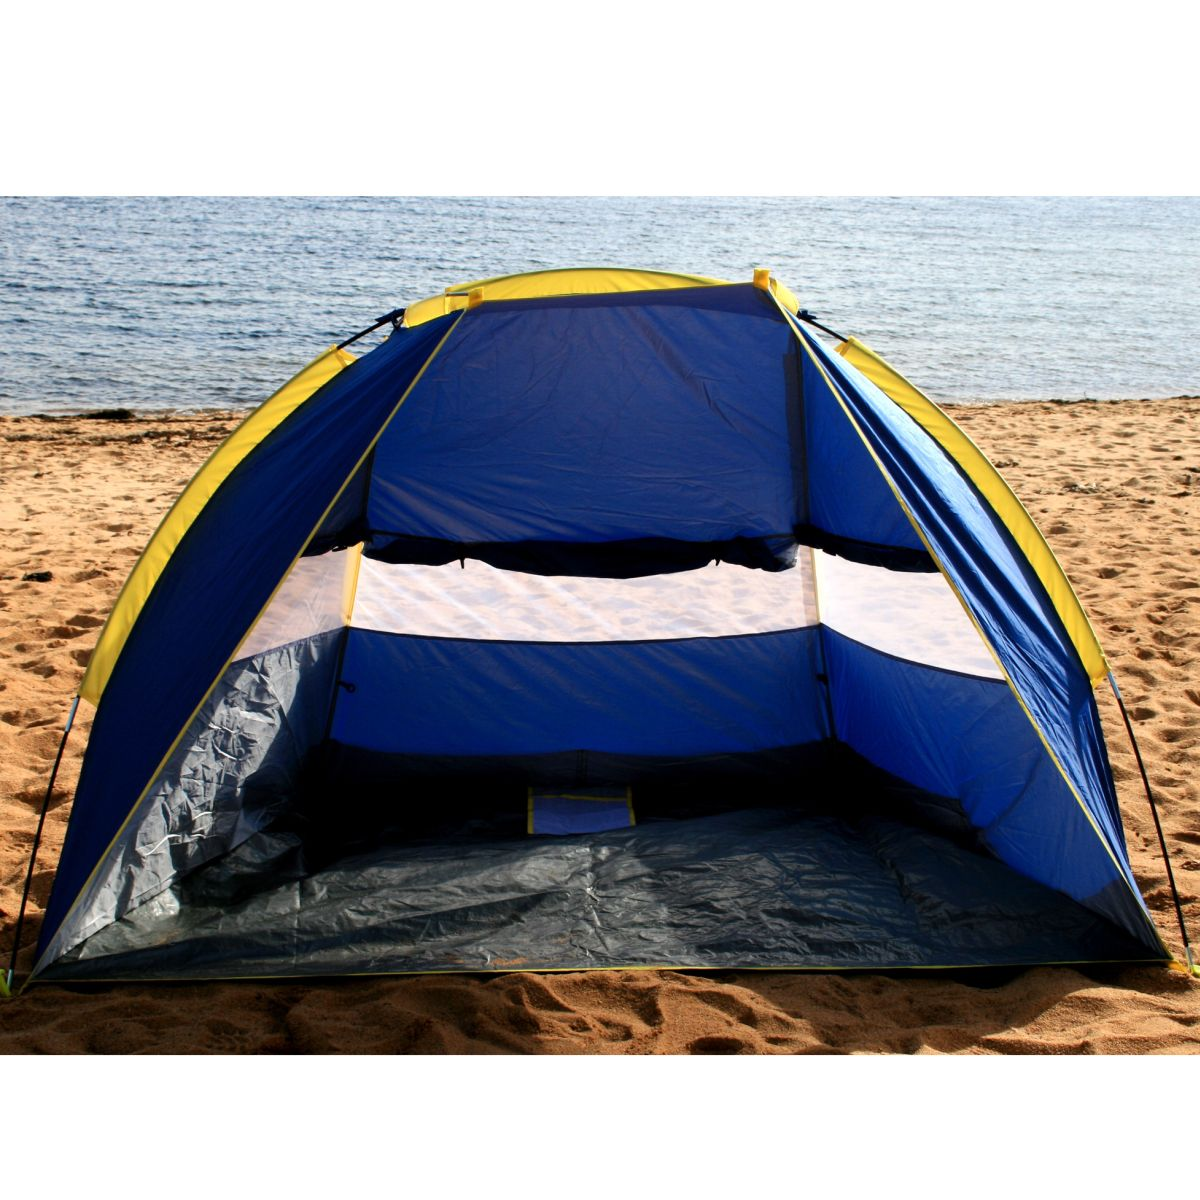 VENUS 2 PERSON BEACH TENT  sc 1 st  BeachKit & Beach Tents Beach Shelters and Pop up Beach Shades Australia ...